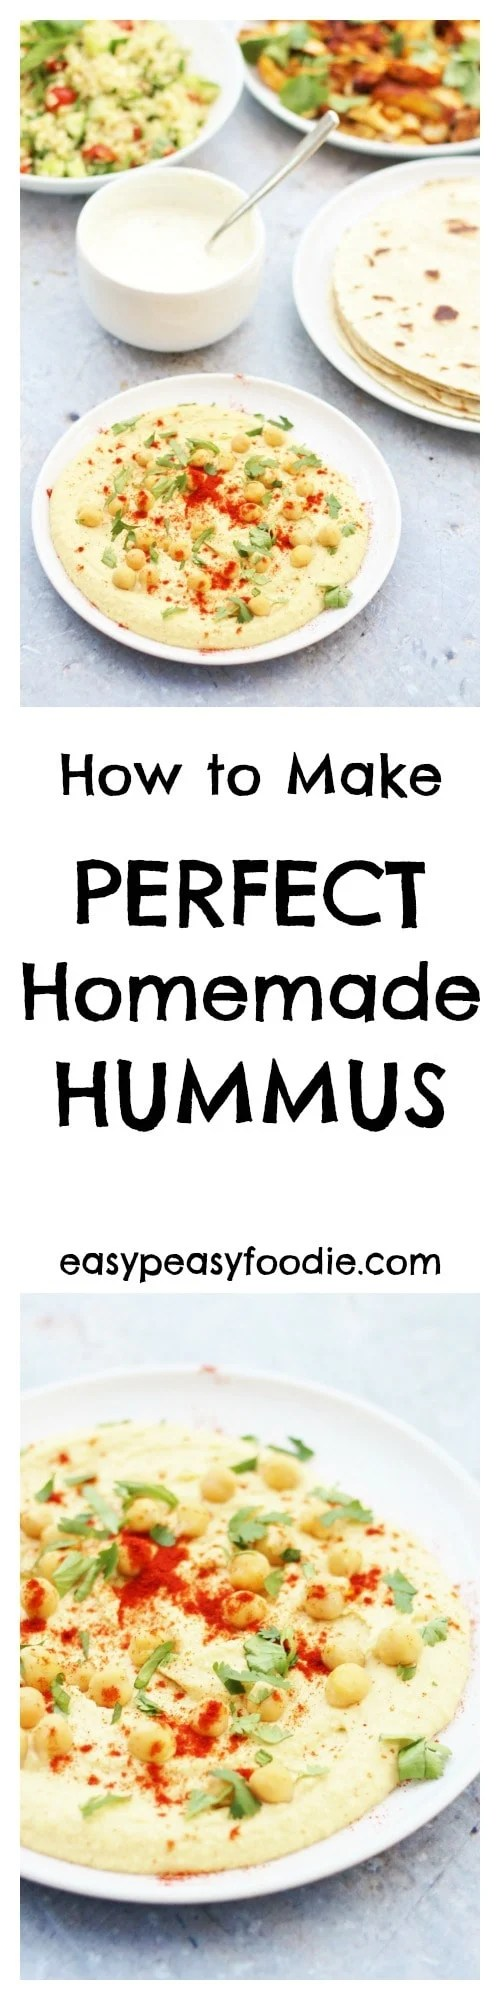 For the longest time, a Perfect Homemade Hummus recipe has eluded me…try as I might, I just haven't been able to get the recipe tasting just right, and it has never been quite smooth enough – but not any longer. I have finally created the recipe for perfect homemade hummus – and it's waaay better than the hummus you get in the shops! #hummus #houmous #chickpeas #tahini #dip #froothie #blender #vegetarian #vegan #easyrecipes #easypeasyfoodie